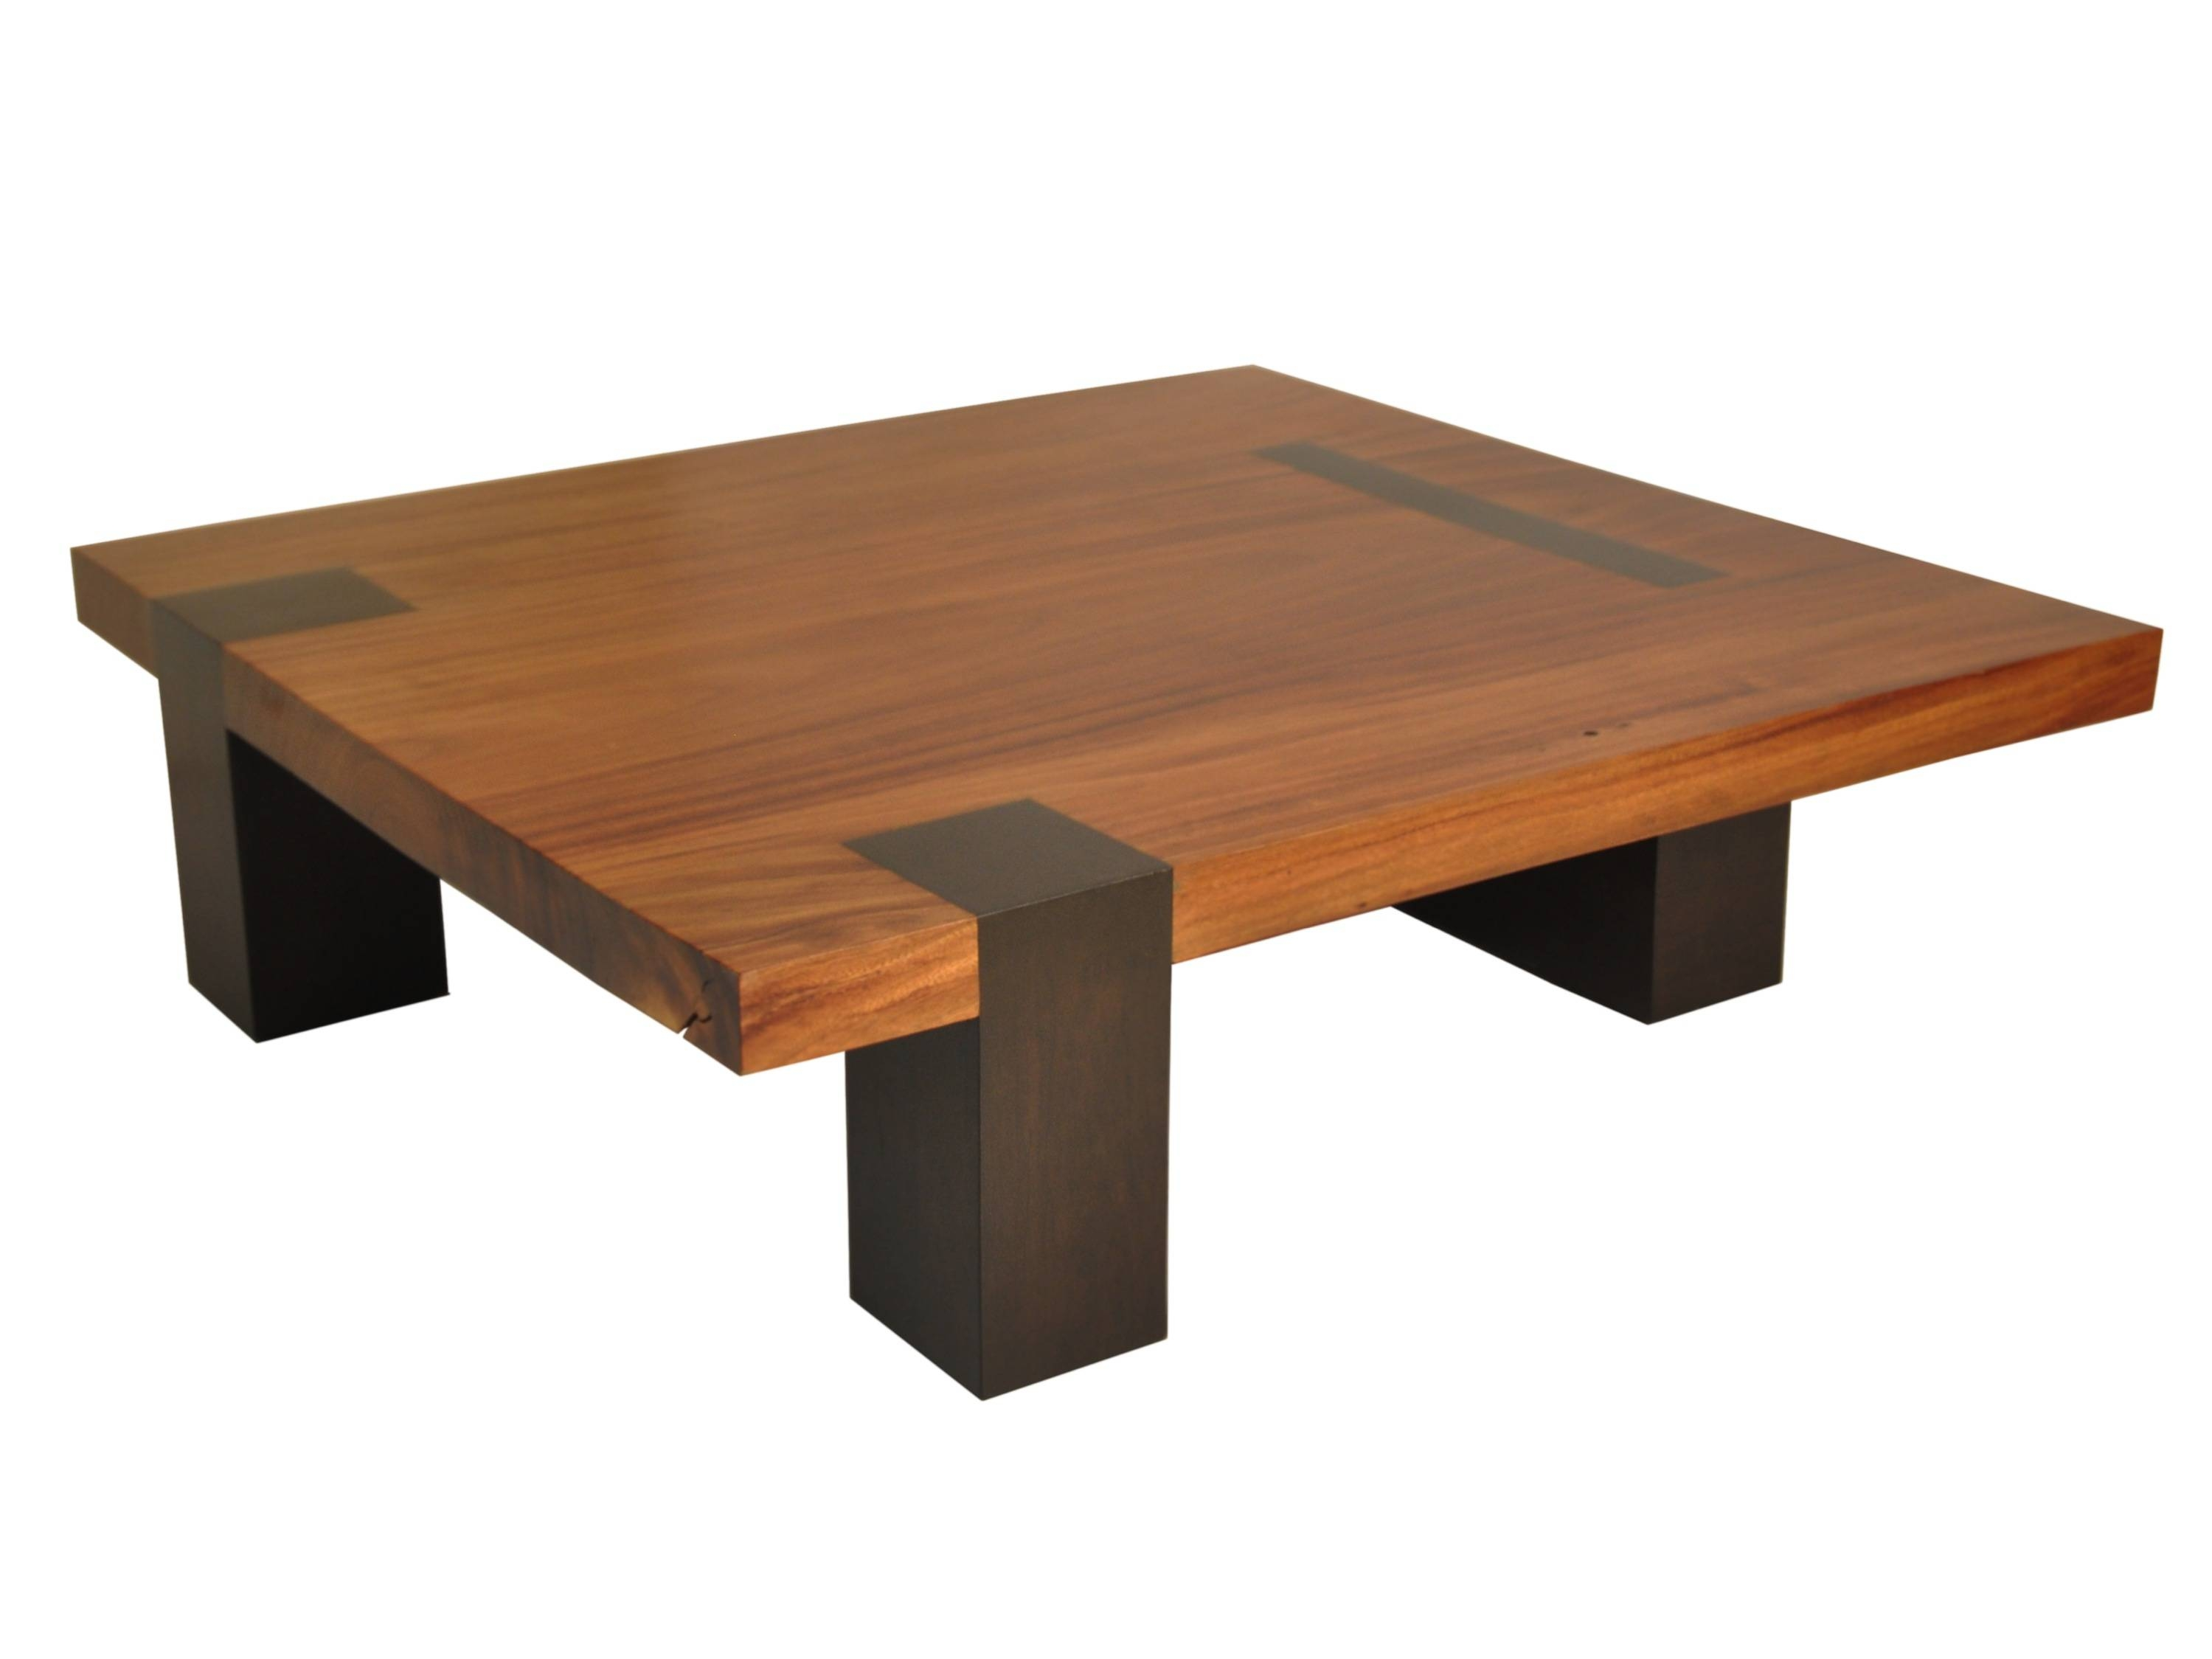 Coffee Tables Ideas: Best Wood Square Coffee Table With Storage for Square Coffee Table Modern (Image 4 of 15)